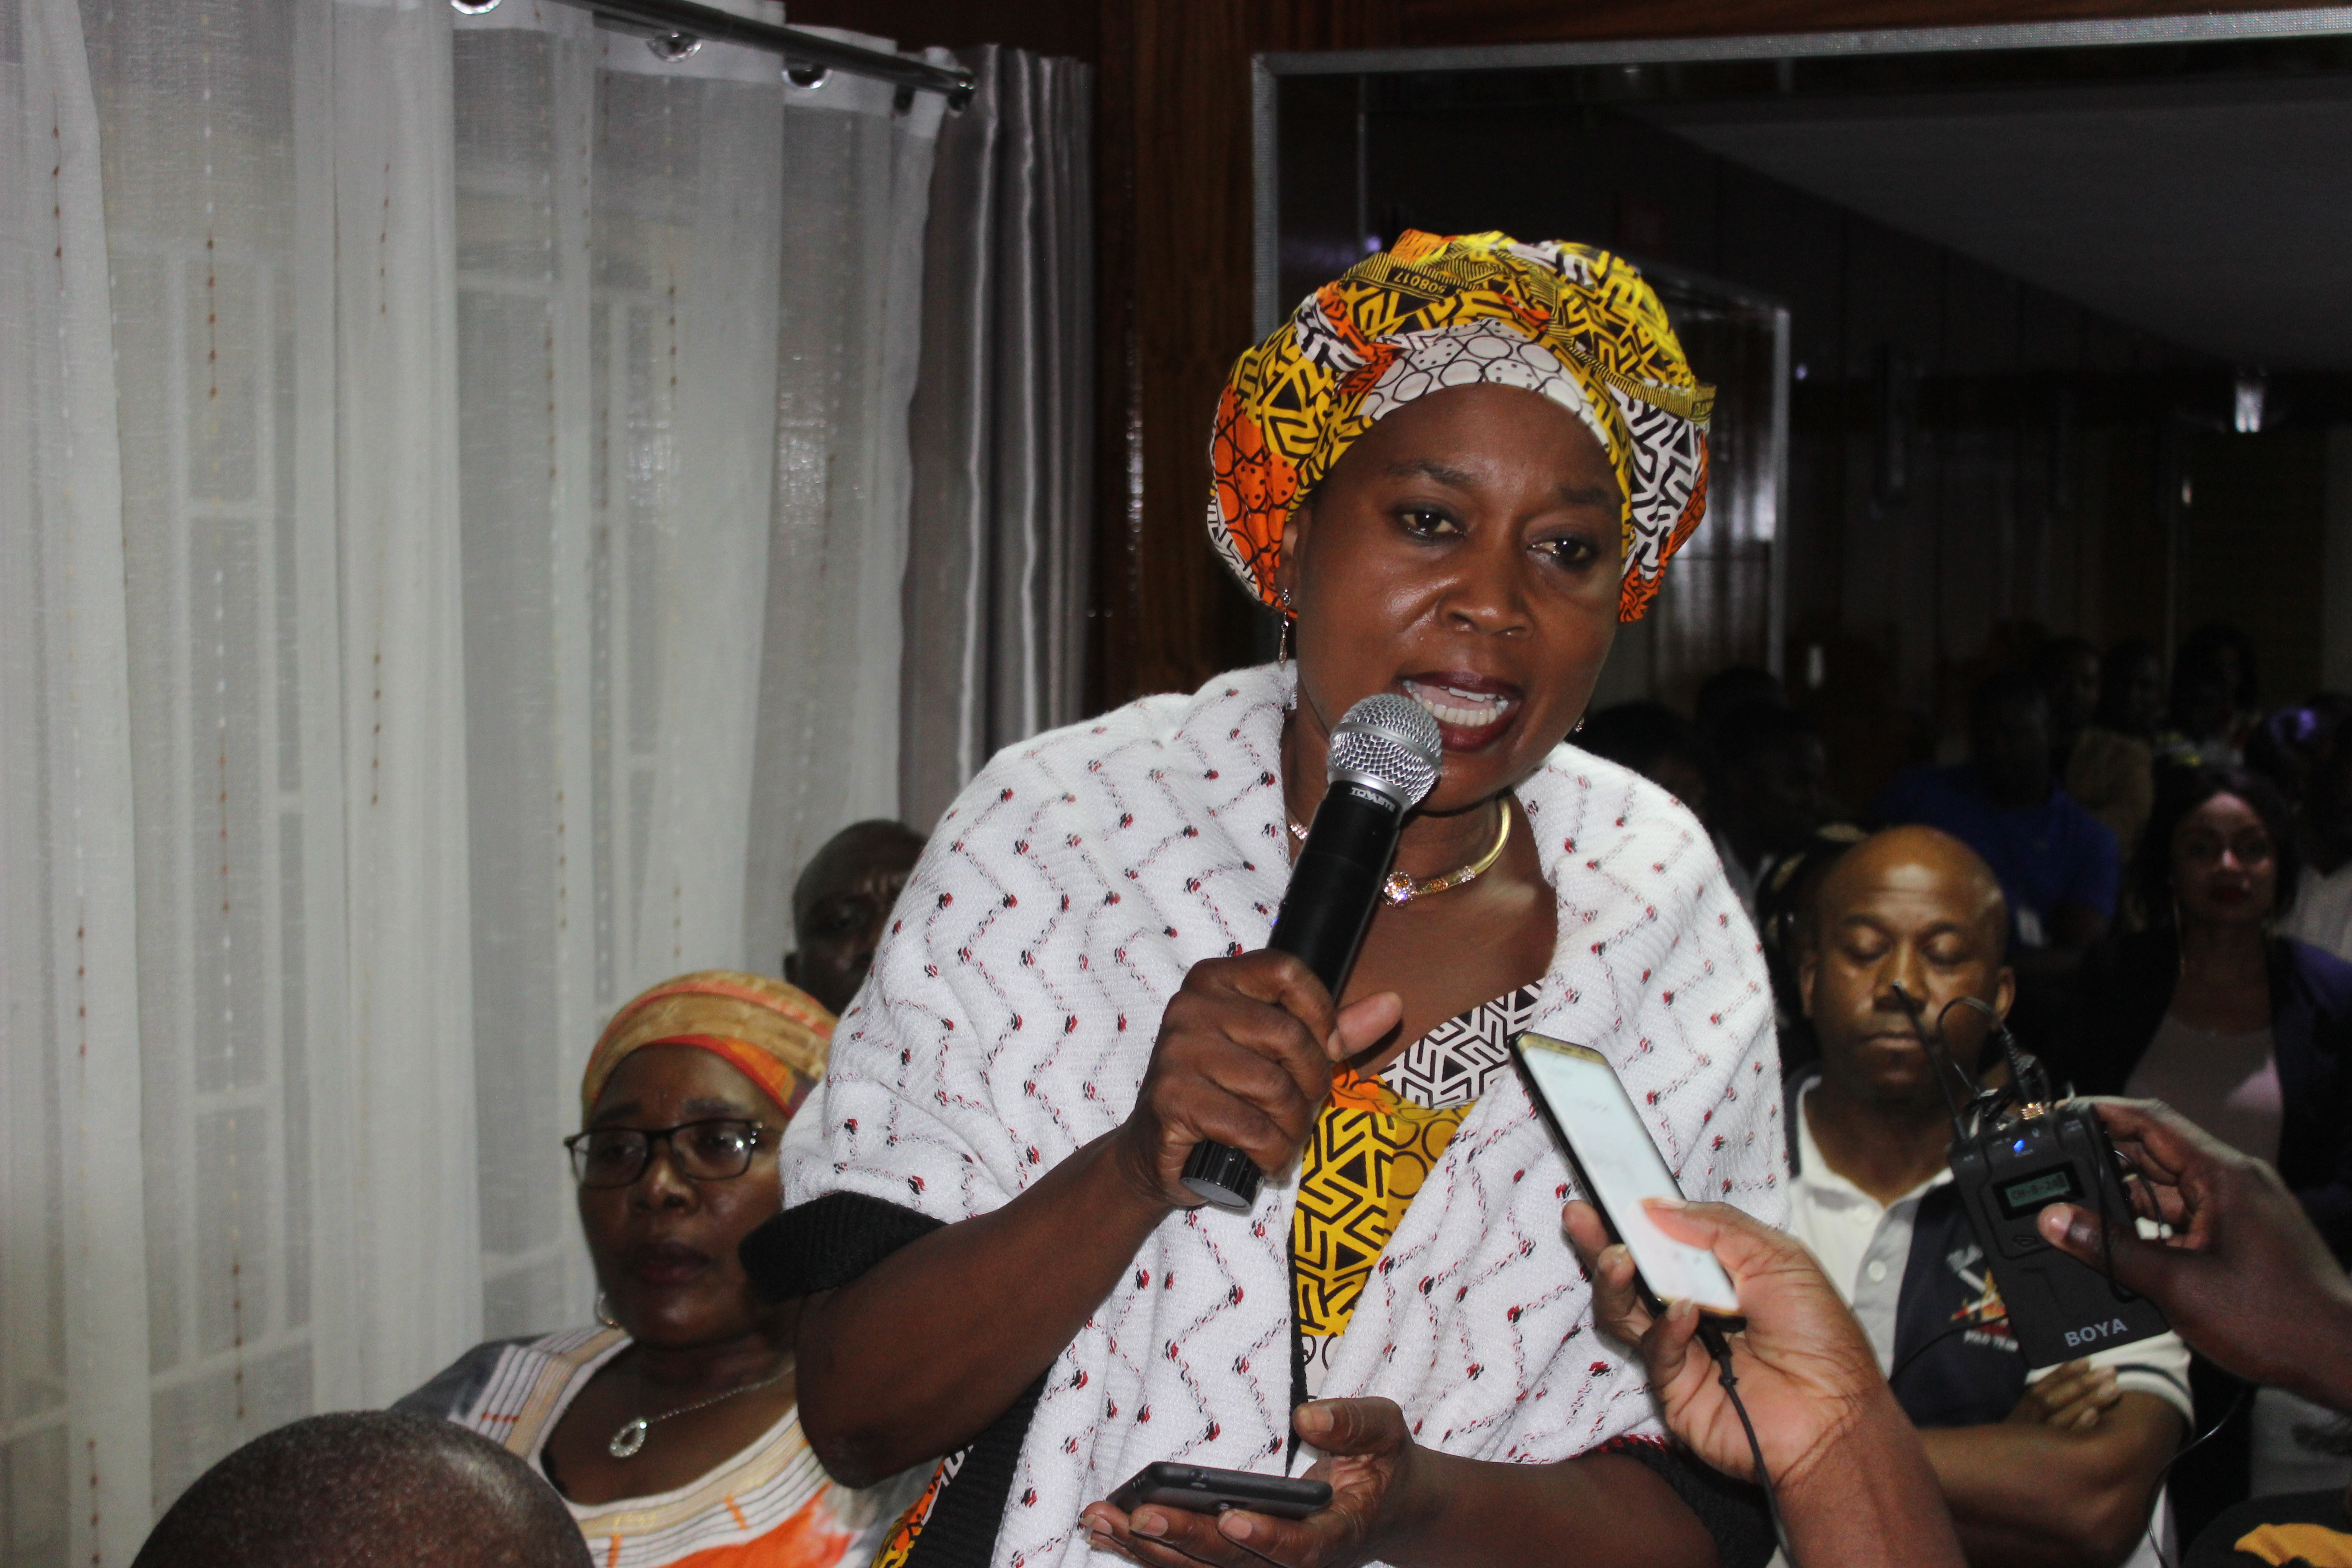 KATUBA MP PATRICIA MWASHINGWELE DIES  ...as number of female MPs dwindles